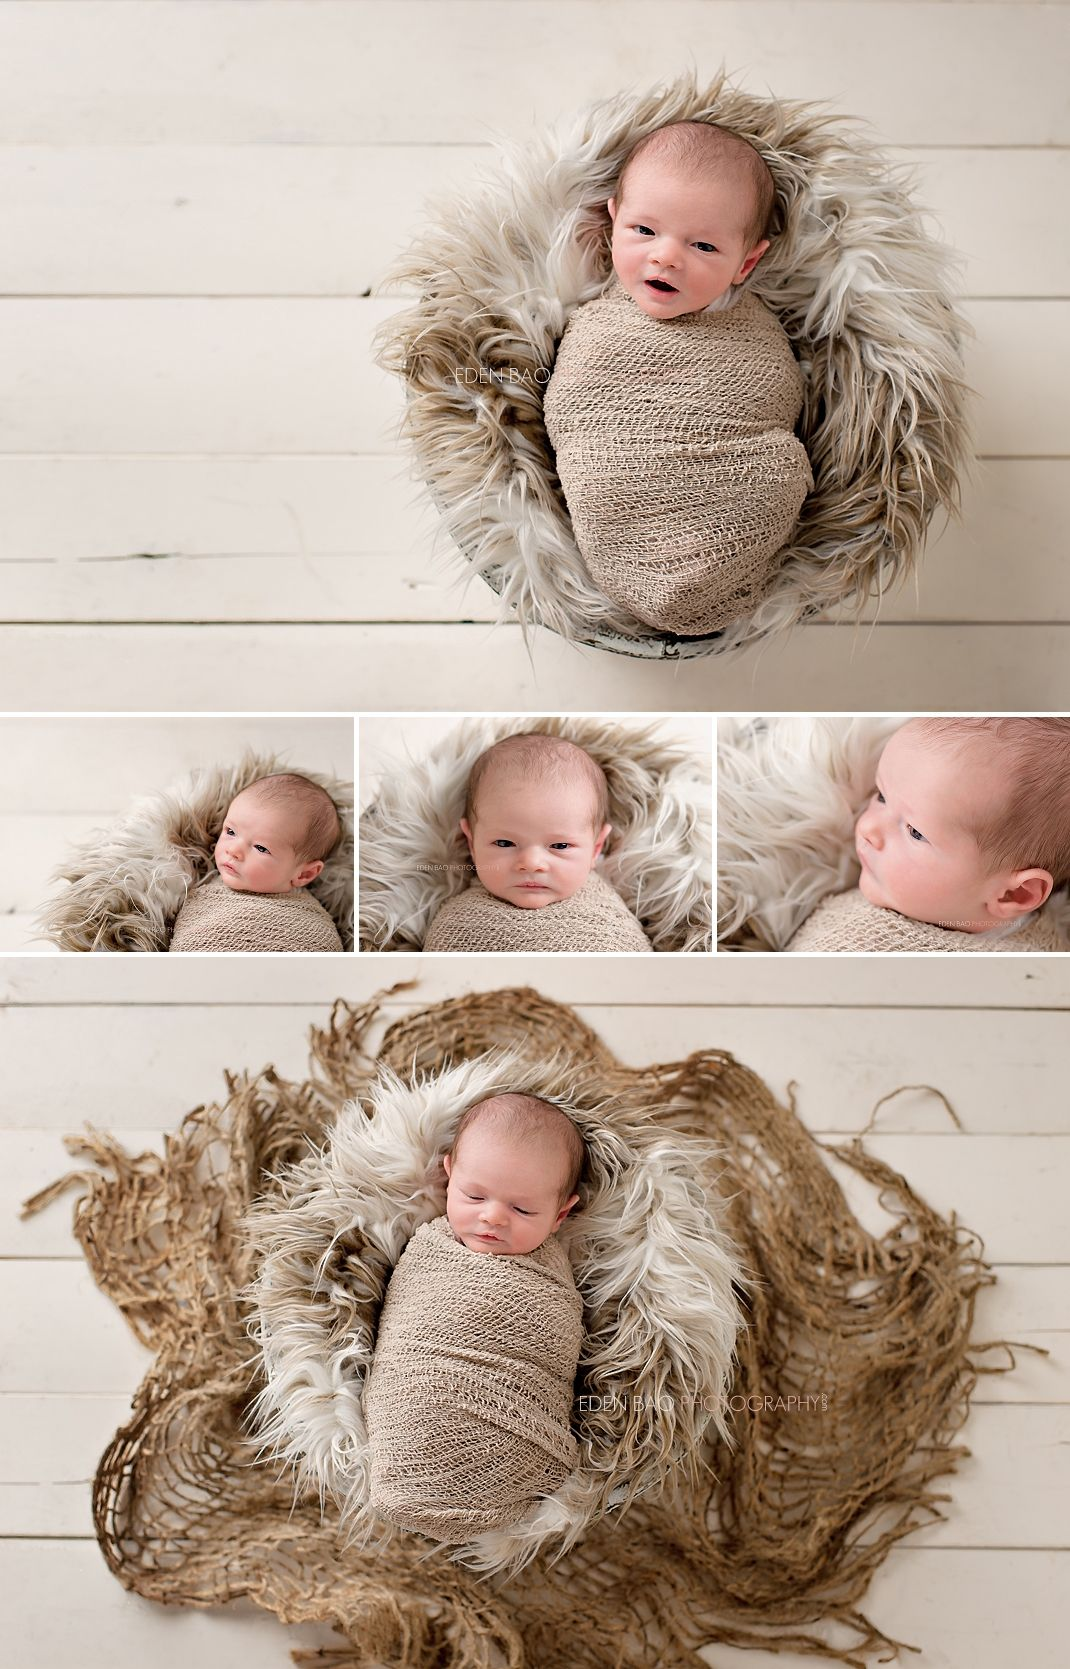 Seattle newborn photographer eden bao offers maternity newborn mentoring tips to photographers on how to shoot efficiently using process